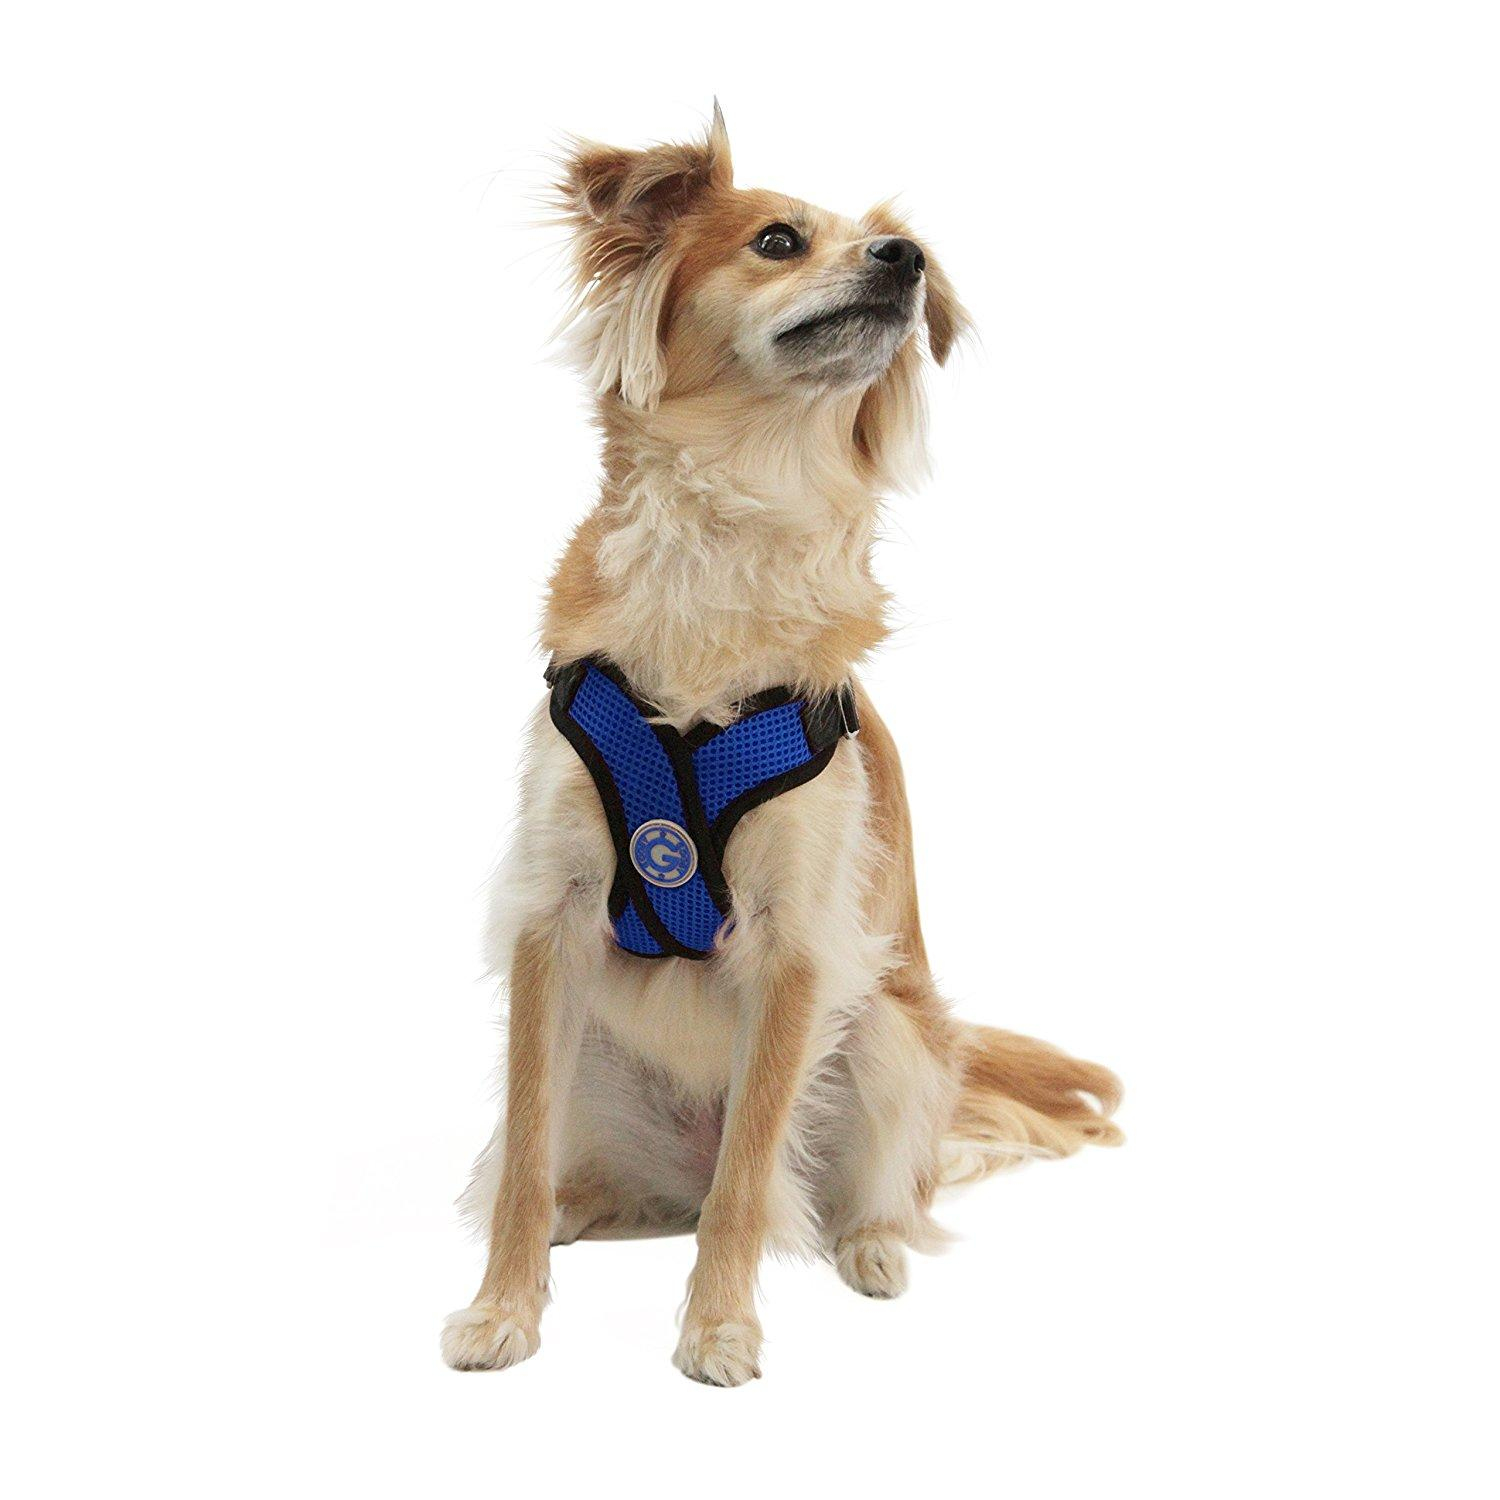 only buy multi functional ridgeback dog from pull freedom velvet a cushioning no with comforter on comfort harness